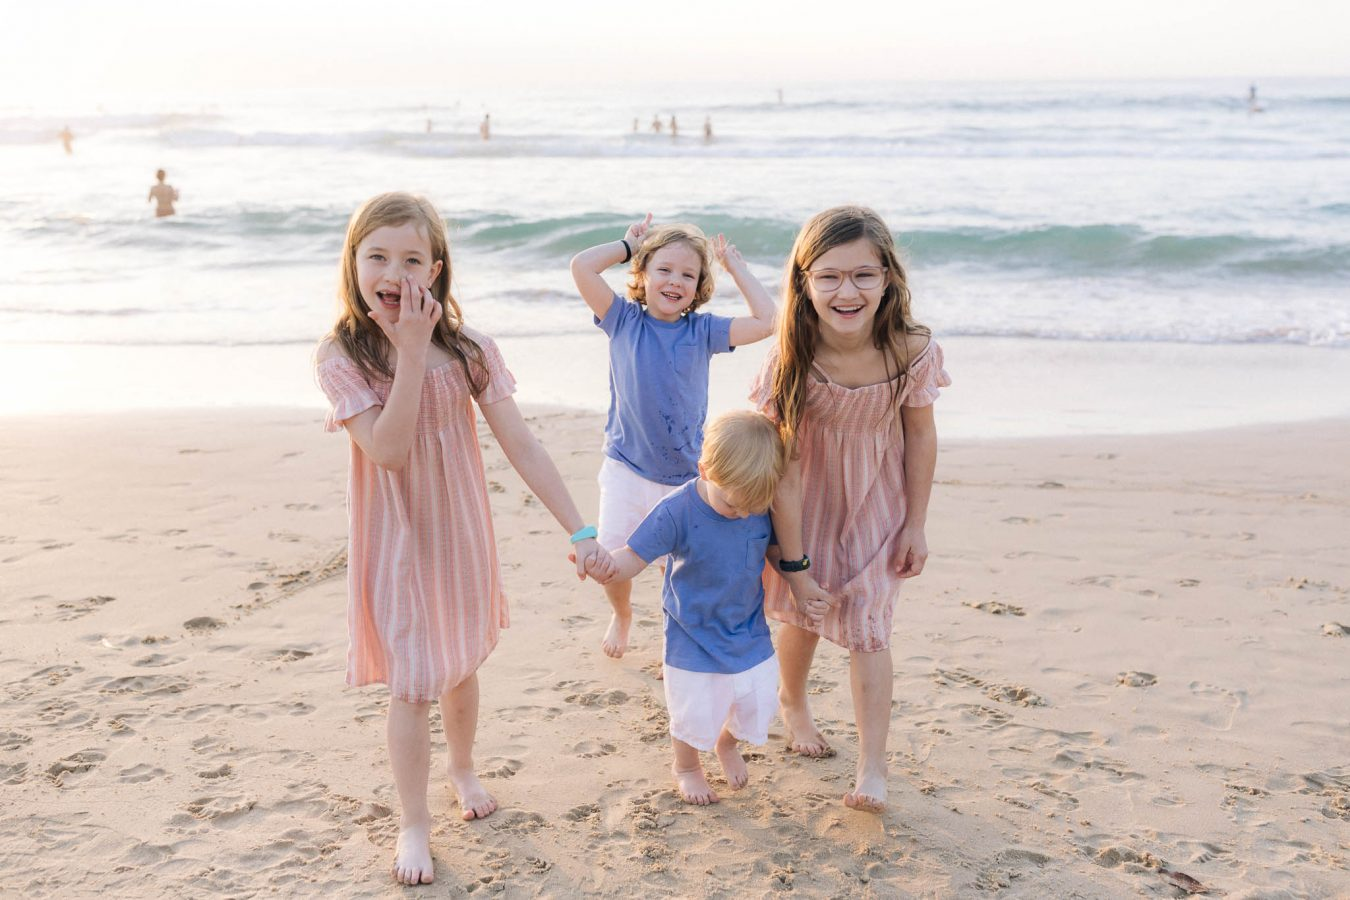 Family photographer bondi beach sydney australia-0013